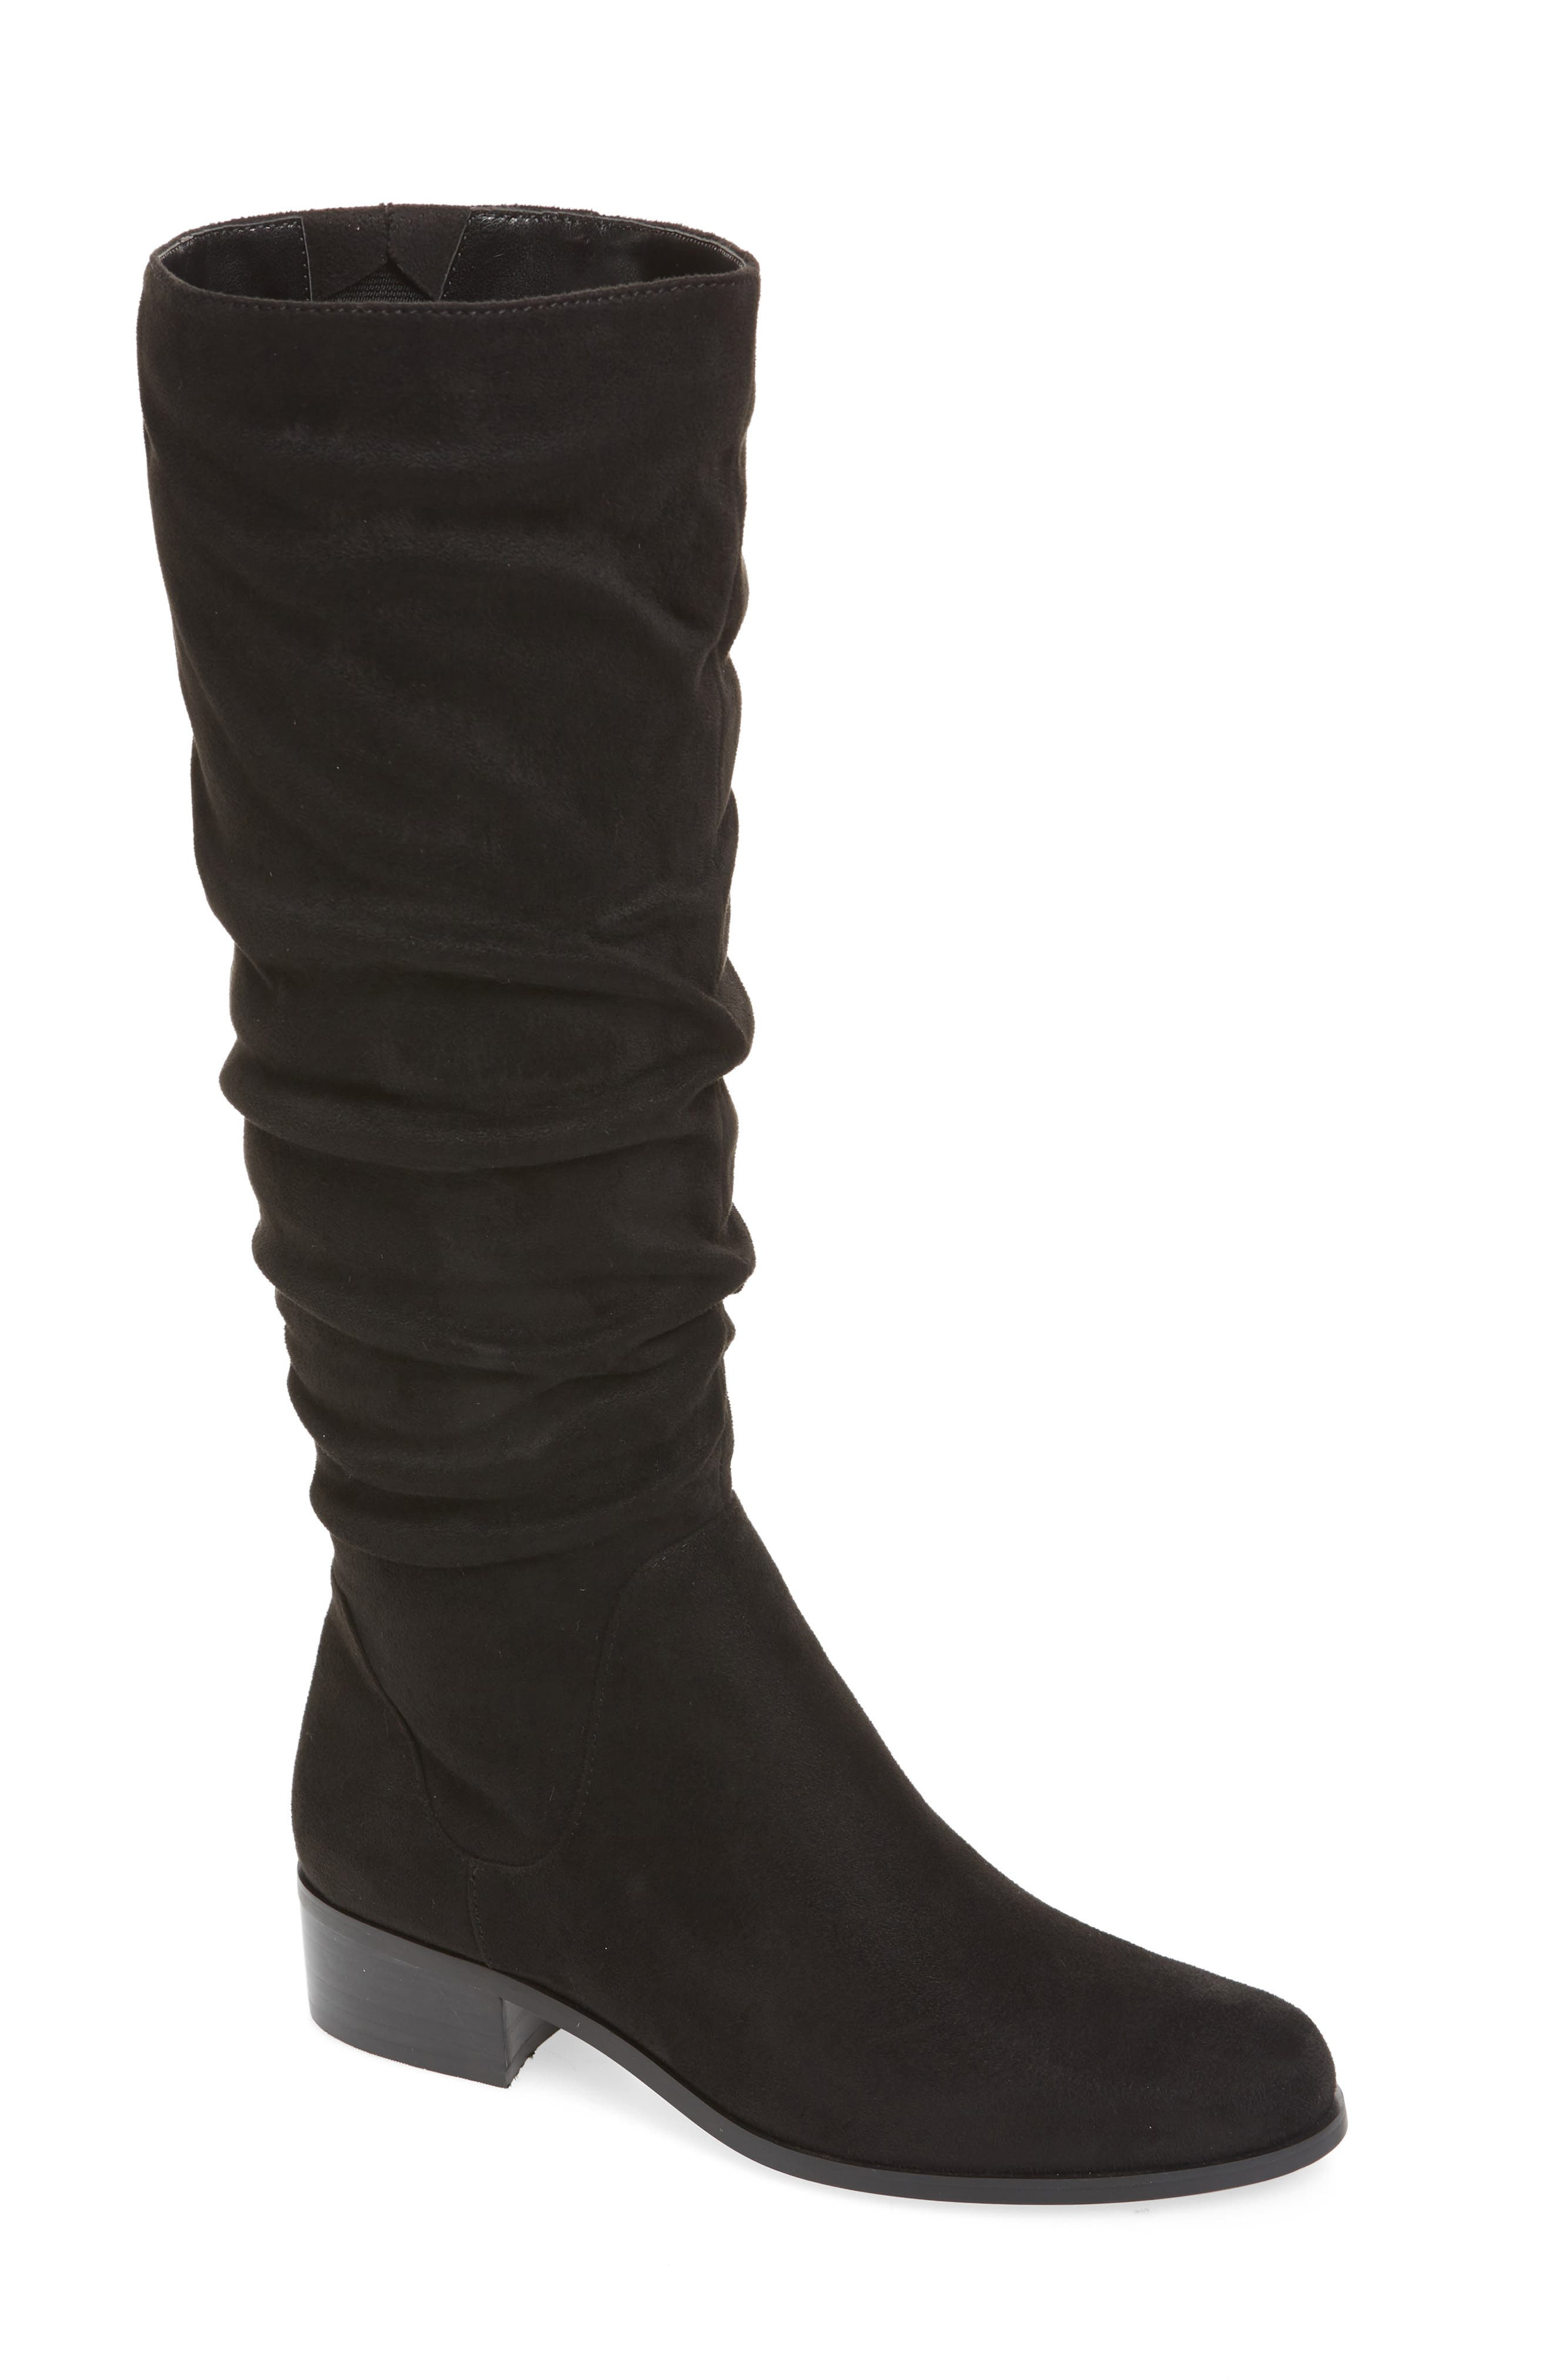 Guru Slouchy Knee High Boot,                             Main thumbnail 1, color,                             001